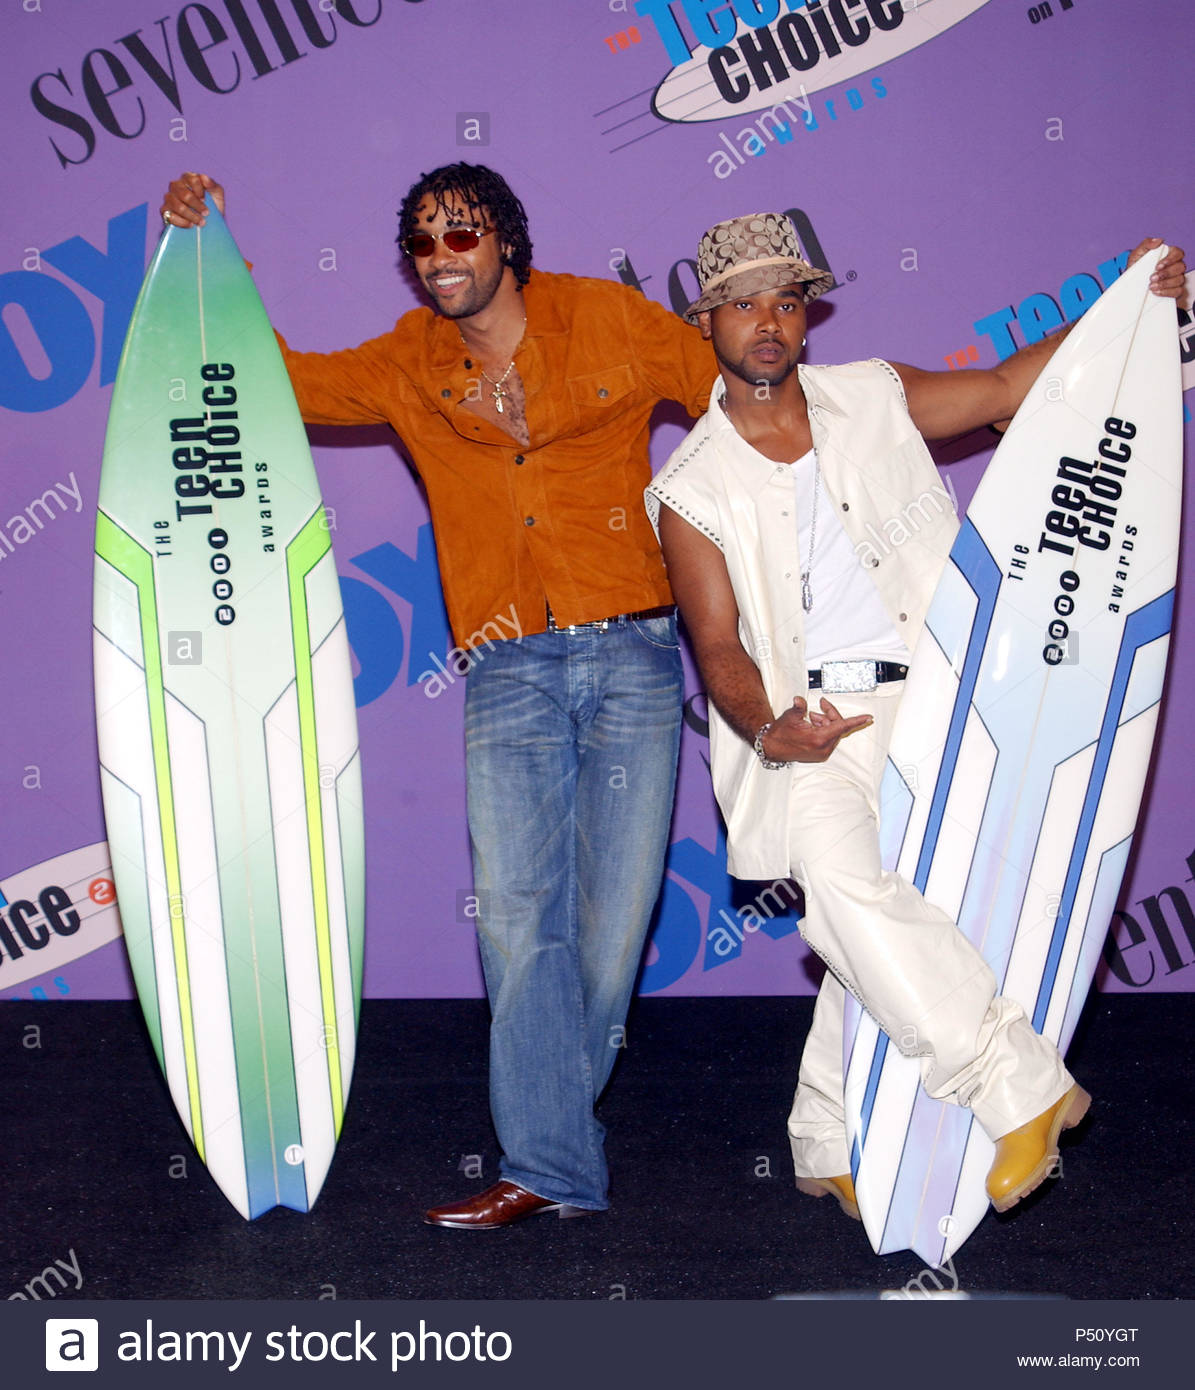 shaggy-left-and-rayvon-backstage-at-the-